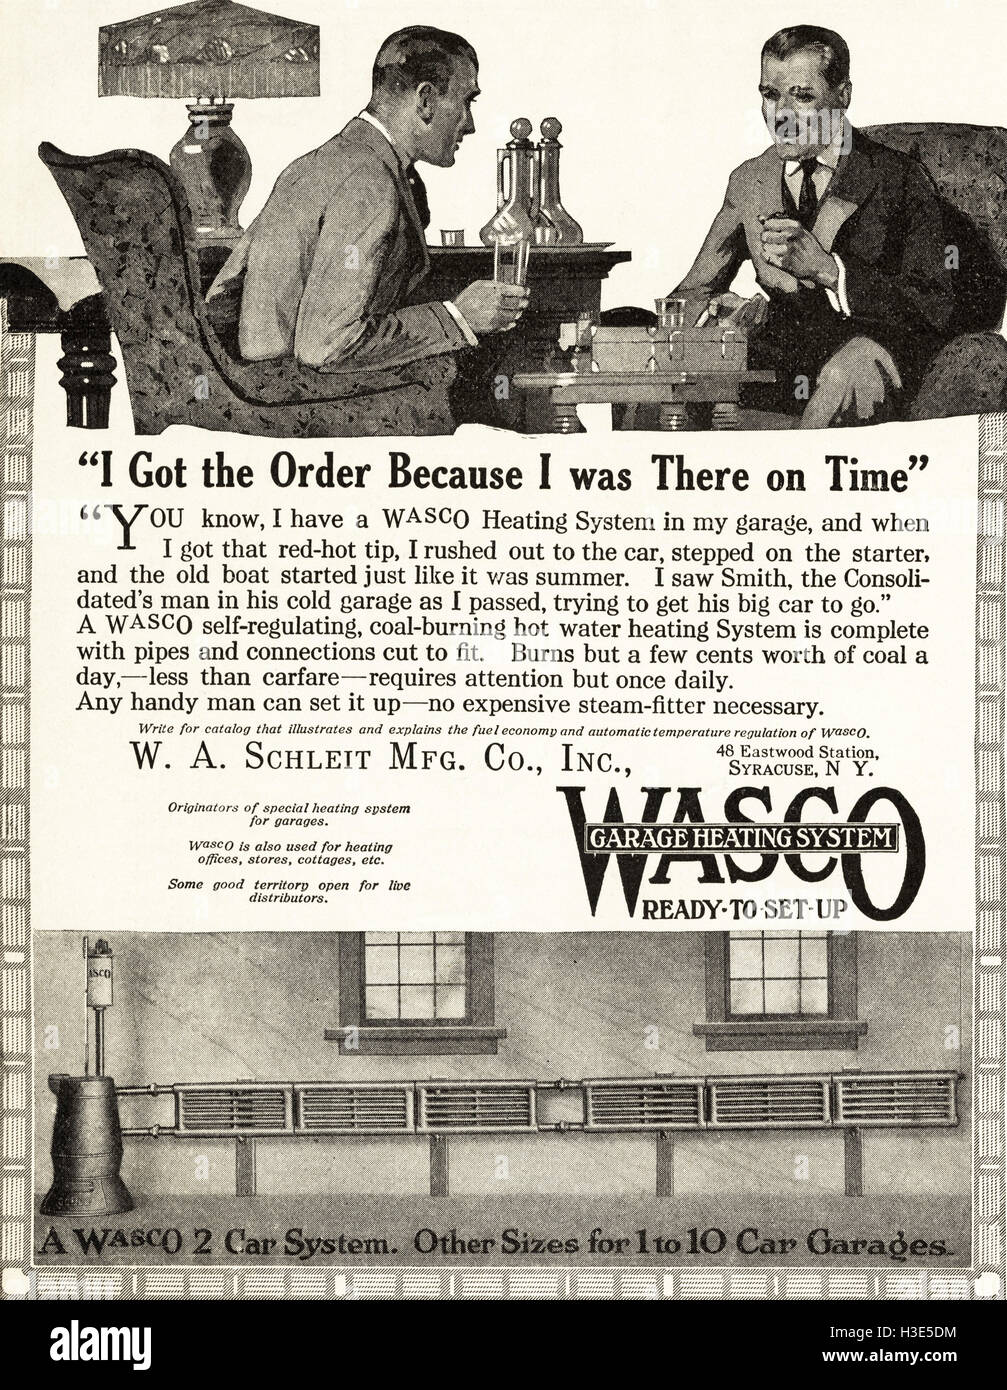 1920 Advert From Original Old Vintage American Magazine 1920s Advertisement Advertising Wasco Garage Heating Systems